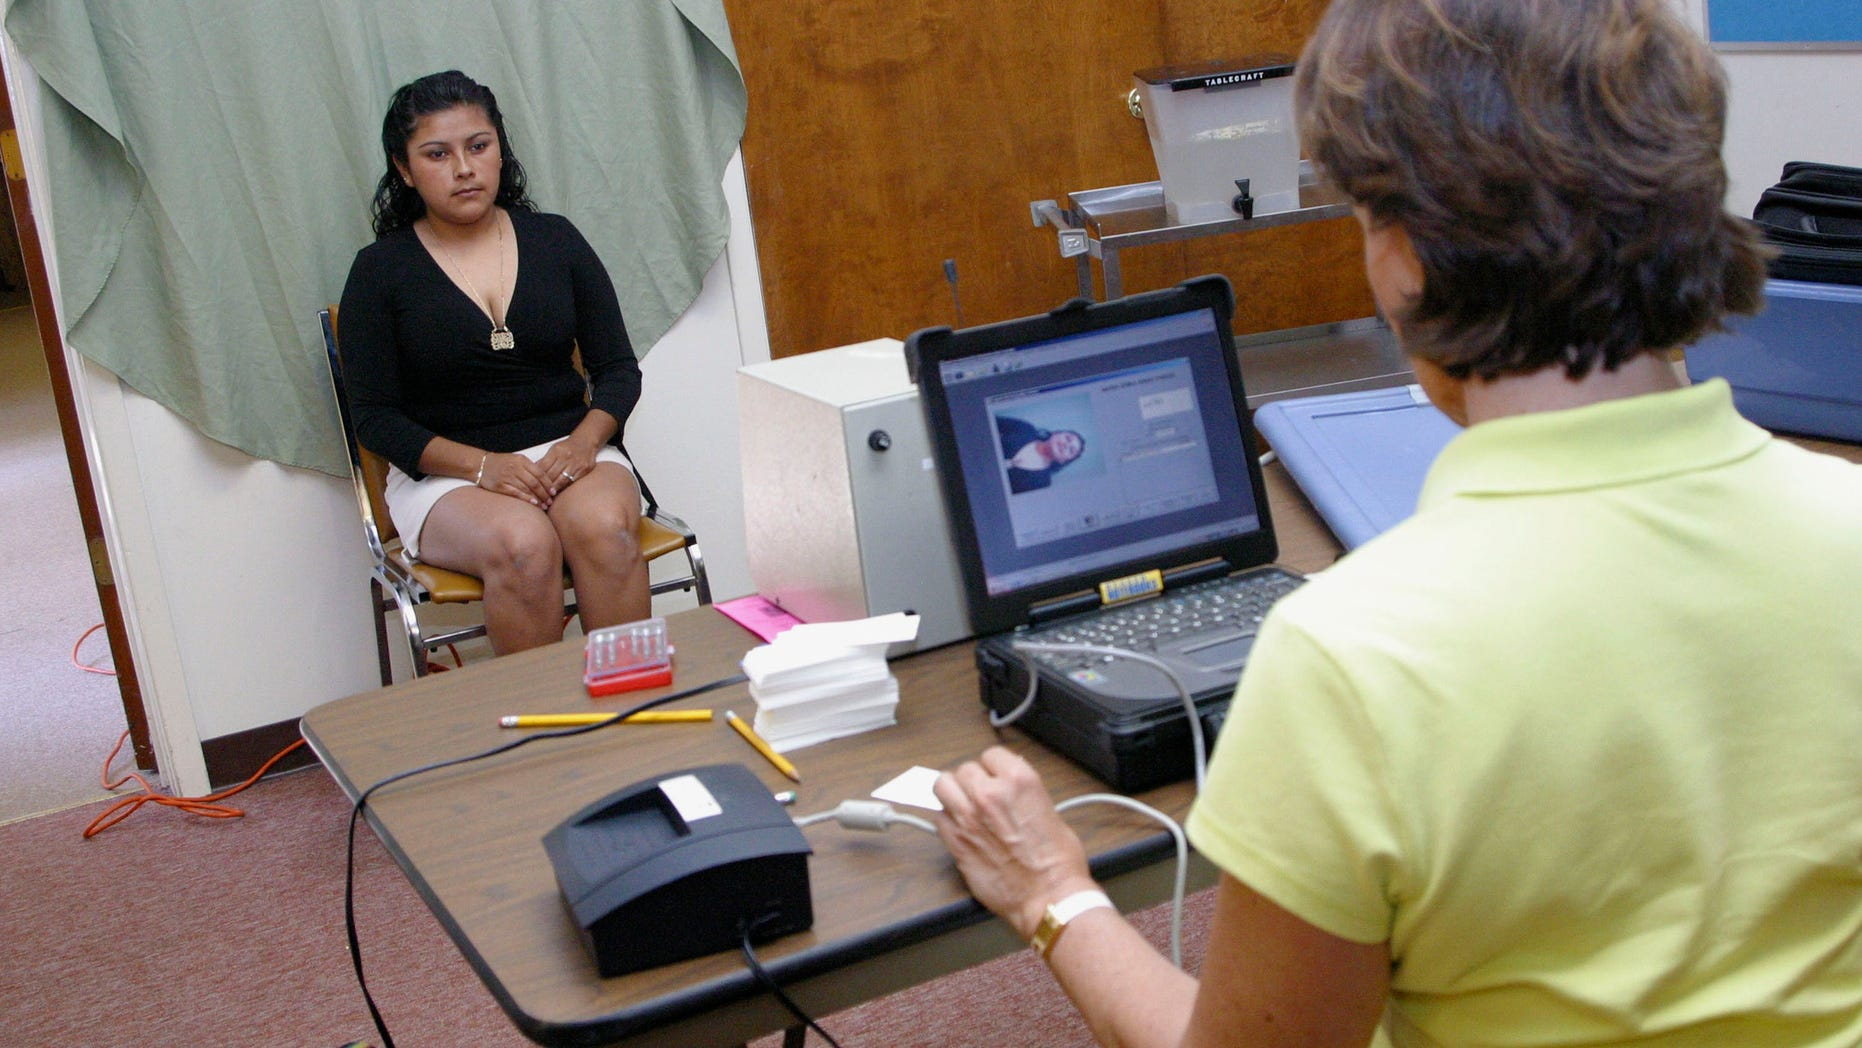 """LONGVIEW, TX-July 24: Erika Tidmore, Mexican citizens married to an American, has a photograph take during the application process for the """"Matricula Consular"""" card, an identification issued to legitimate Mexican citizens living outside of Mexico. A half dozens Mexican Consulate officials, from Dallas, Texas established what they called a """"mobile consulate"""" at the Wesley-McCabe United Methodist Church in Longview, Texas, on Saturday, July 24, to process applicants 450 Mexican citizens in the Northeast Texas town. The ID cards assist local and state Texas officials to recognize legitimate Mexican residents in the United States. Applicants for the """"Matricula Consular"""" cards had to prove legal residence in the United States to receive the card.  Photo by Mario Villafuerte/Getty Images"""